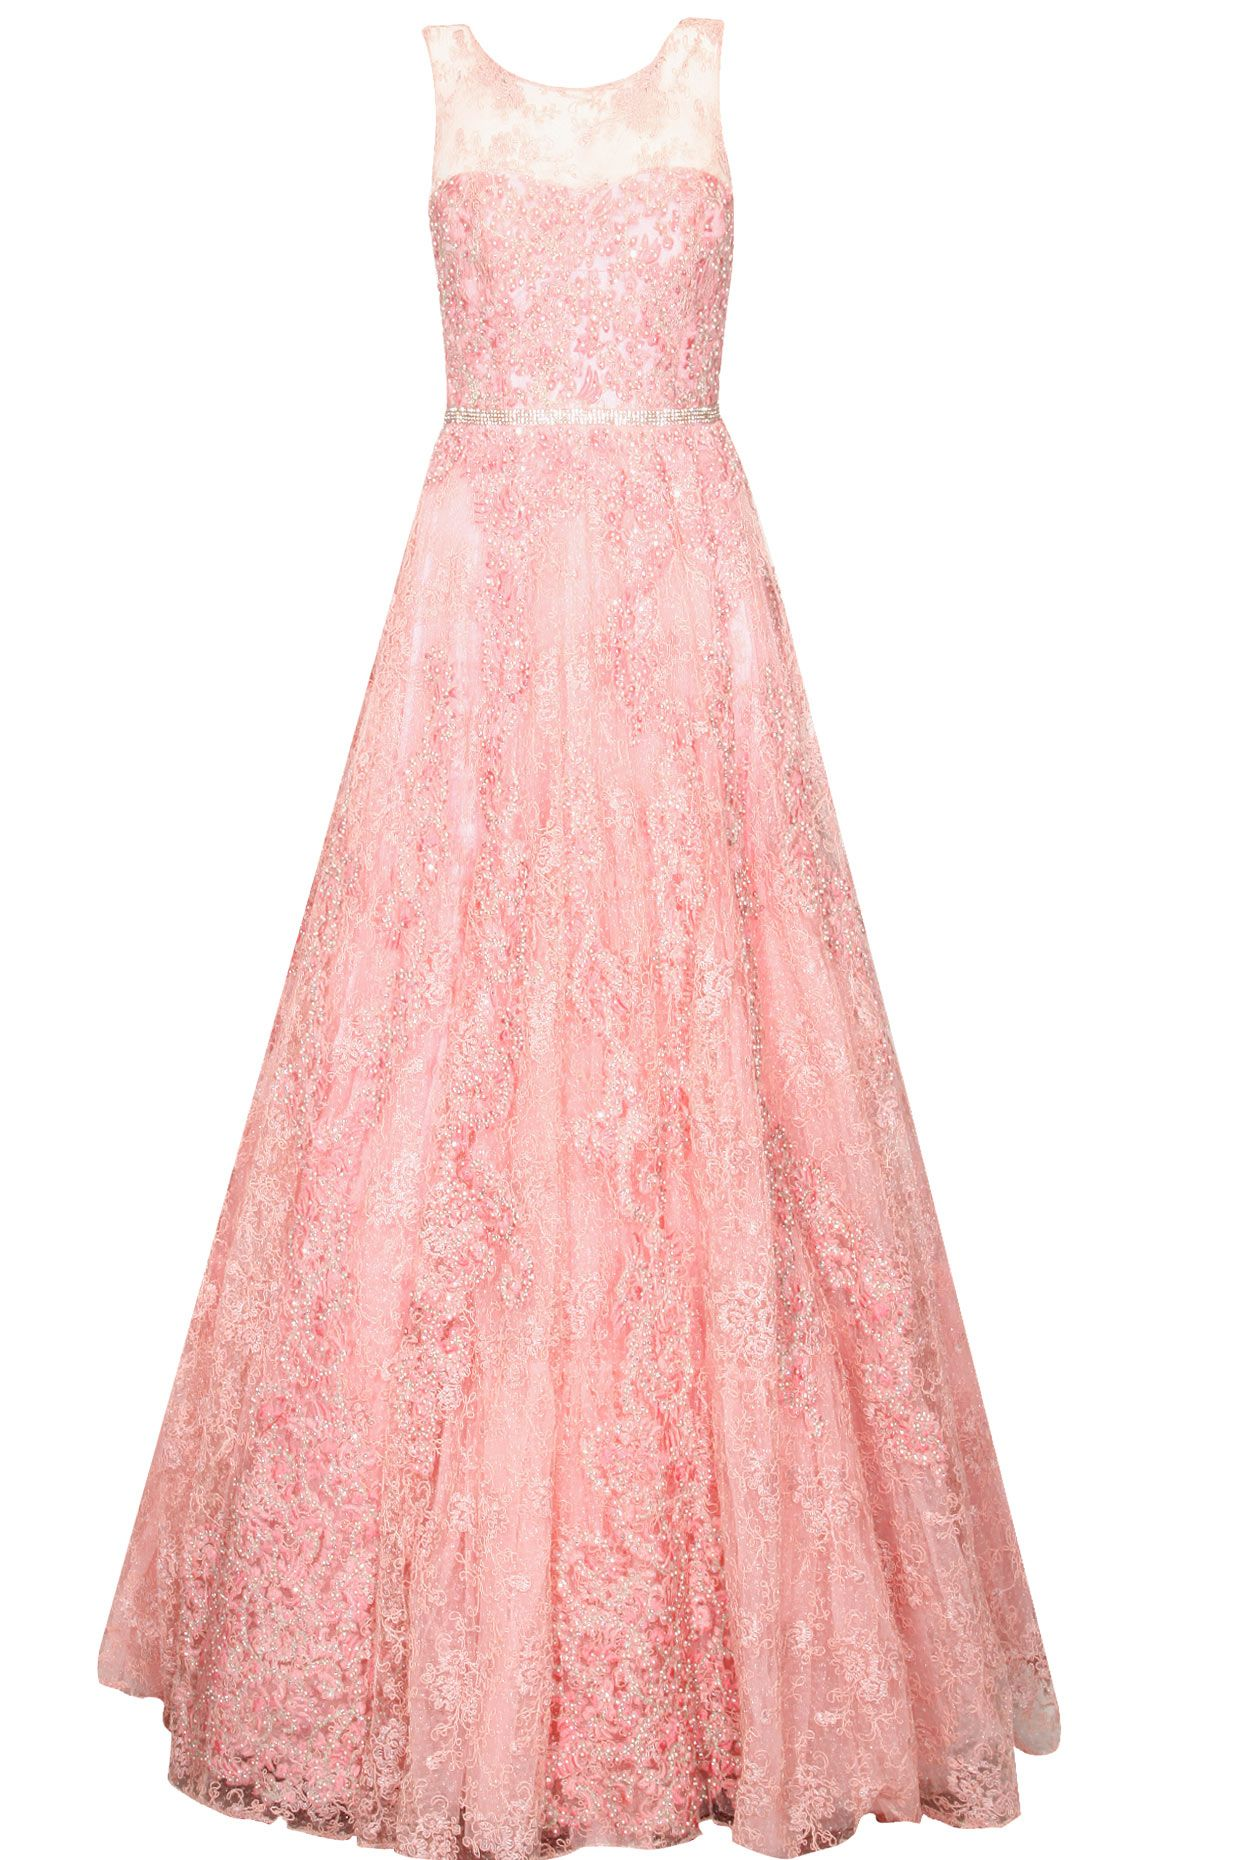 Rose pink floral swaroskovi crystals and pearls embroidered gown